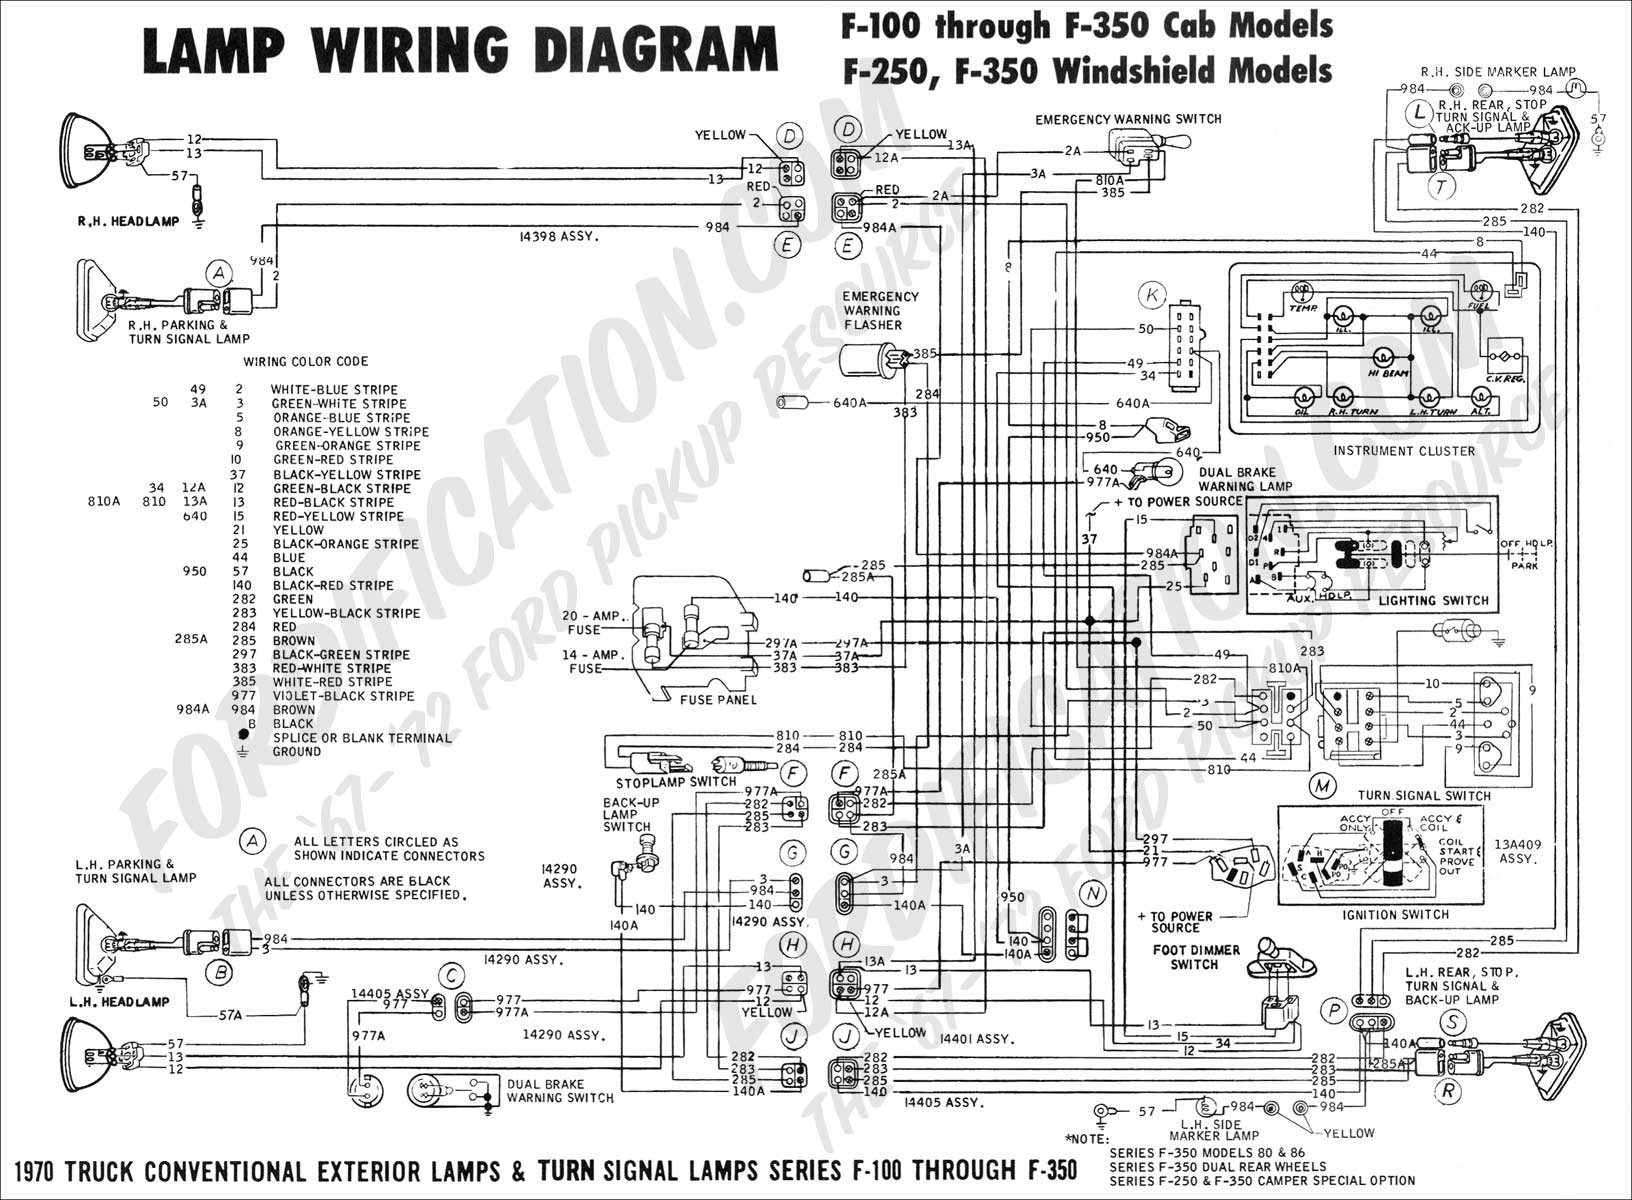 2005 Ford E350 Trailer Wiring Diagram Wire Center Mb Quart Da112001 Car Amplifier 400 W Rms 1200 Pmpo 1 2010 Econline Library Rh Evevo Co E250 Fuse